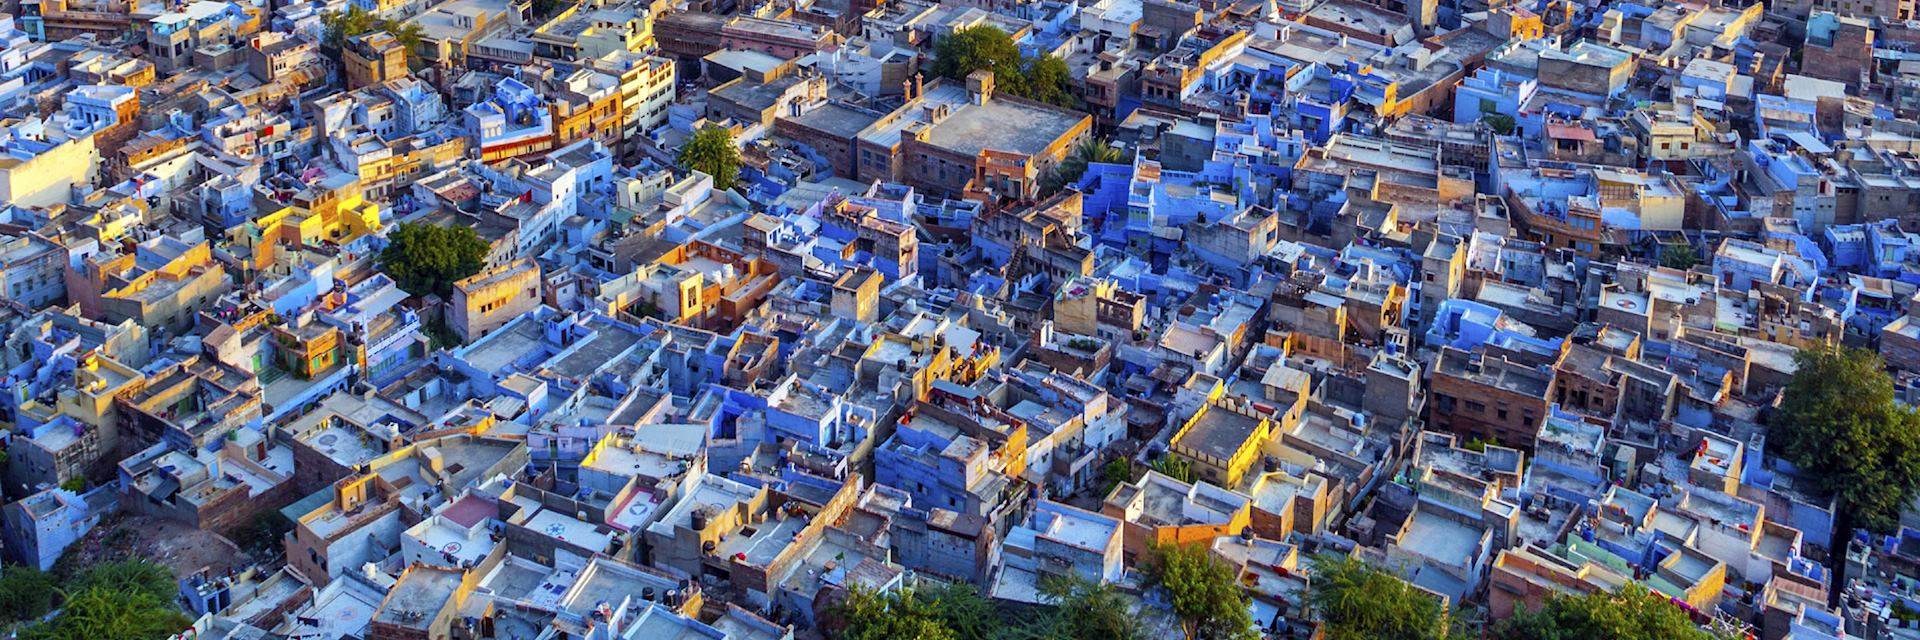 The blue city of Jodhpur, Rajasthan